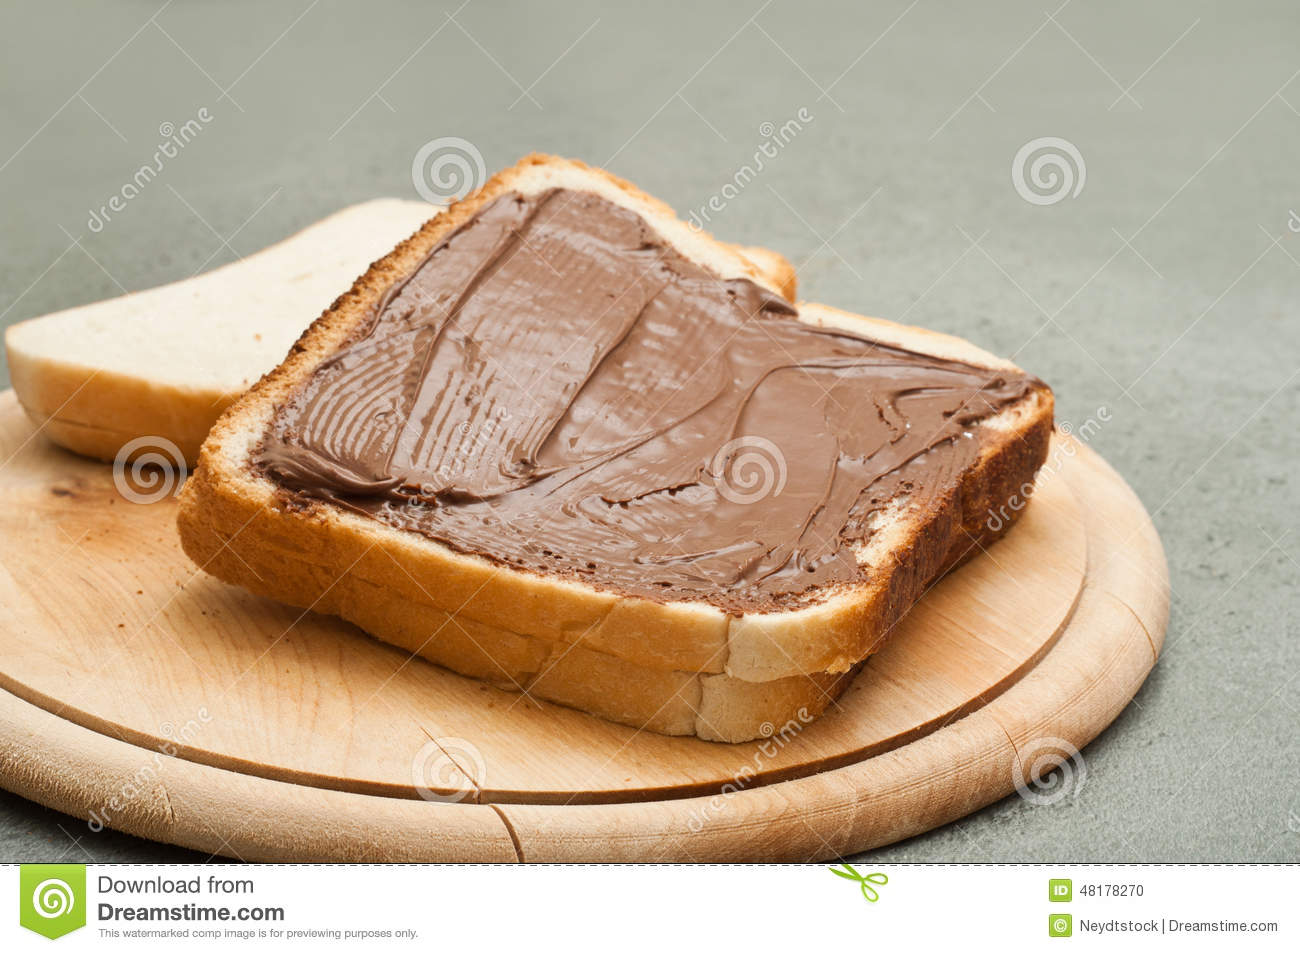 Bread And Chocolate Stock Photo - Image: 48178270